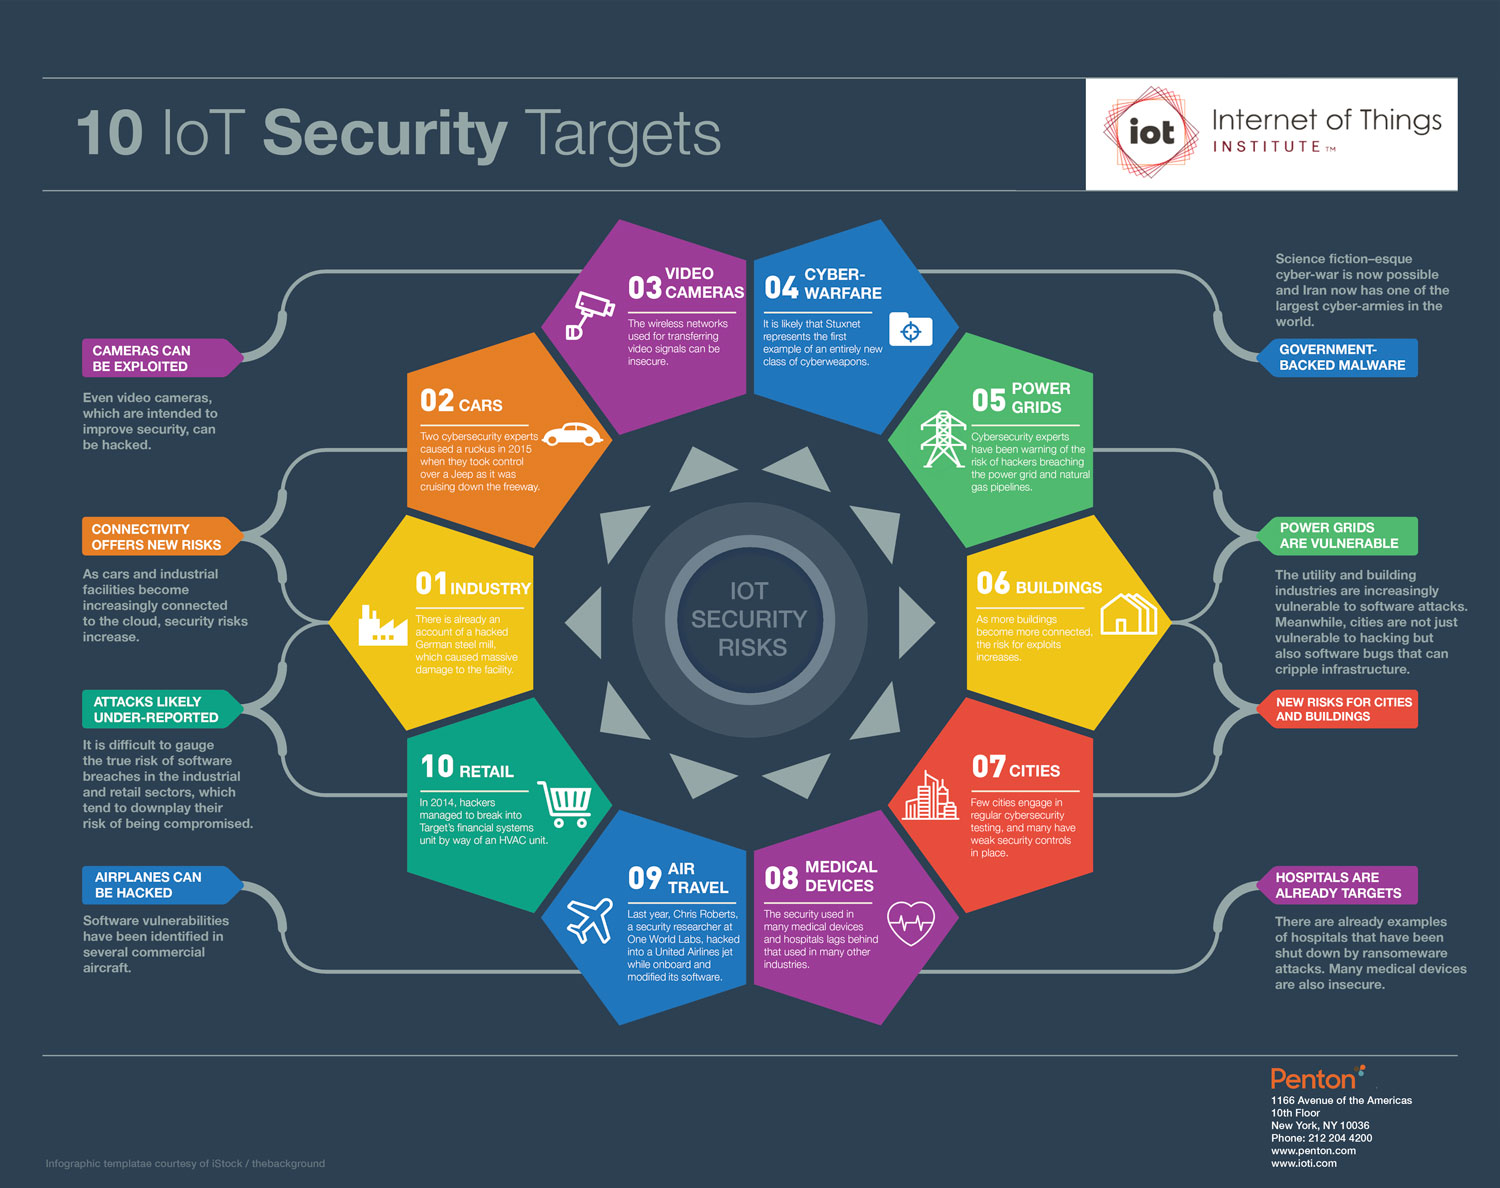 10 IoT Security Targets